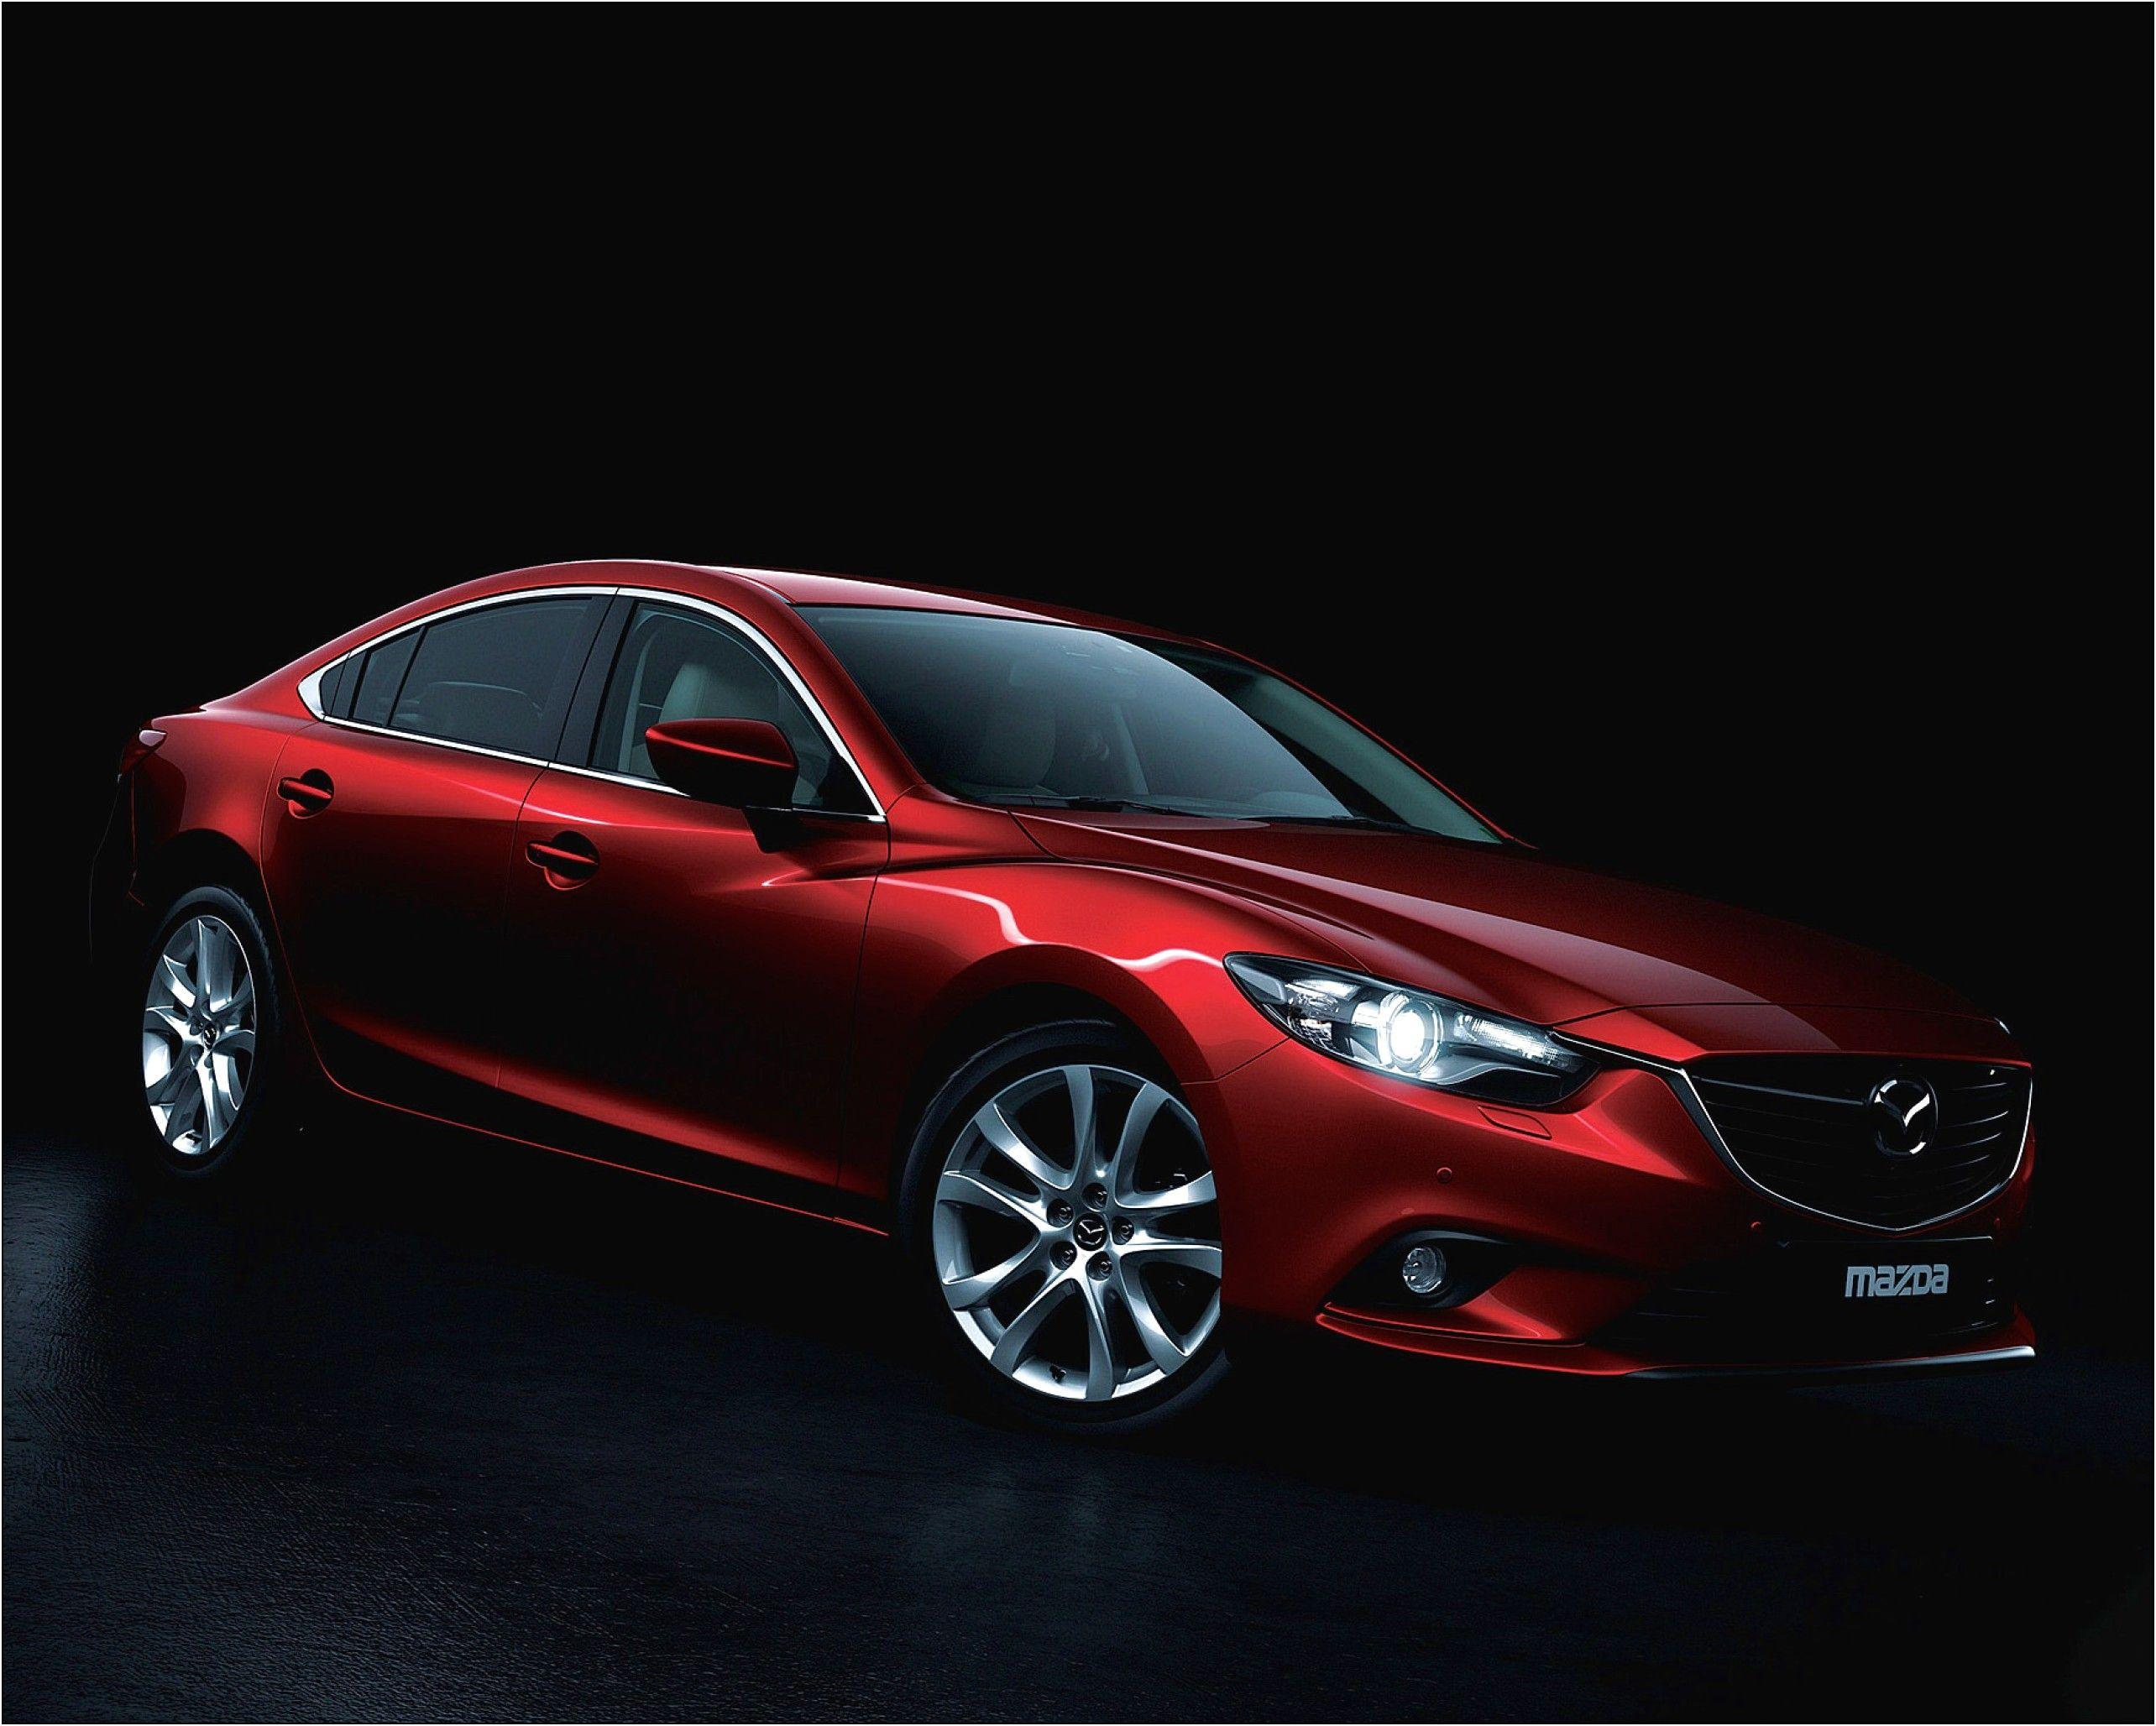 Mazda 6 Iphone Wallpaper - http://www.justcontinentalcars.com ...